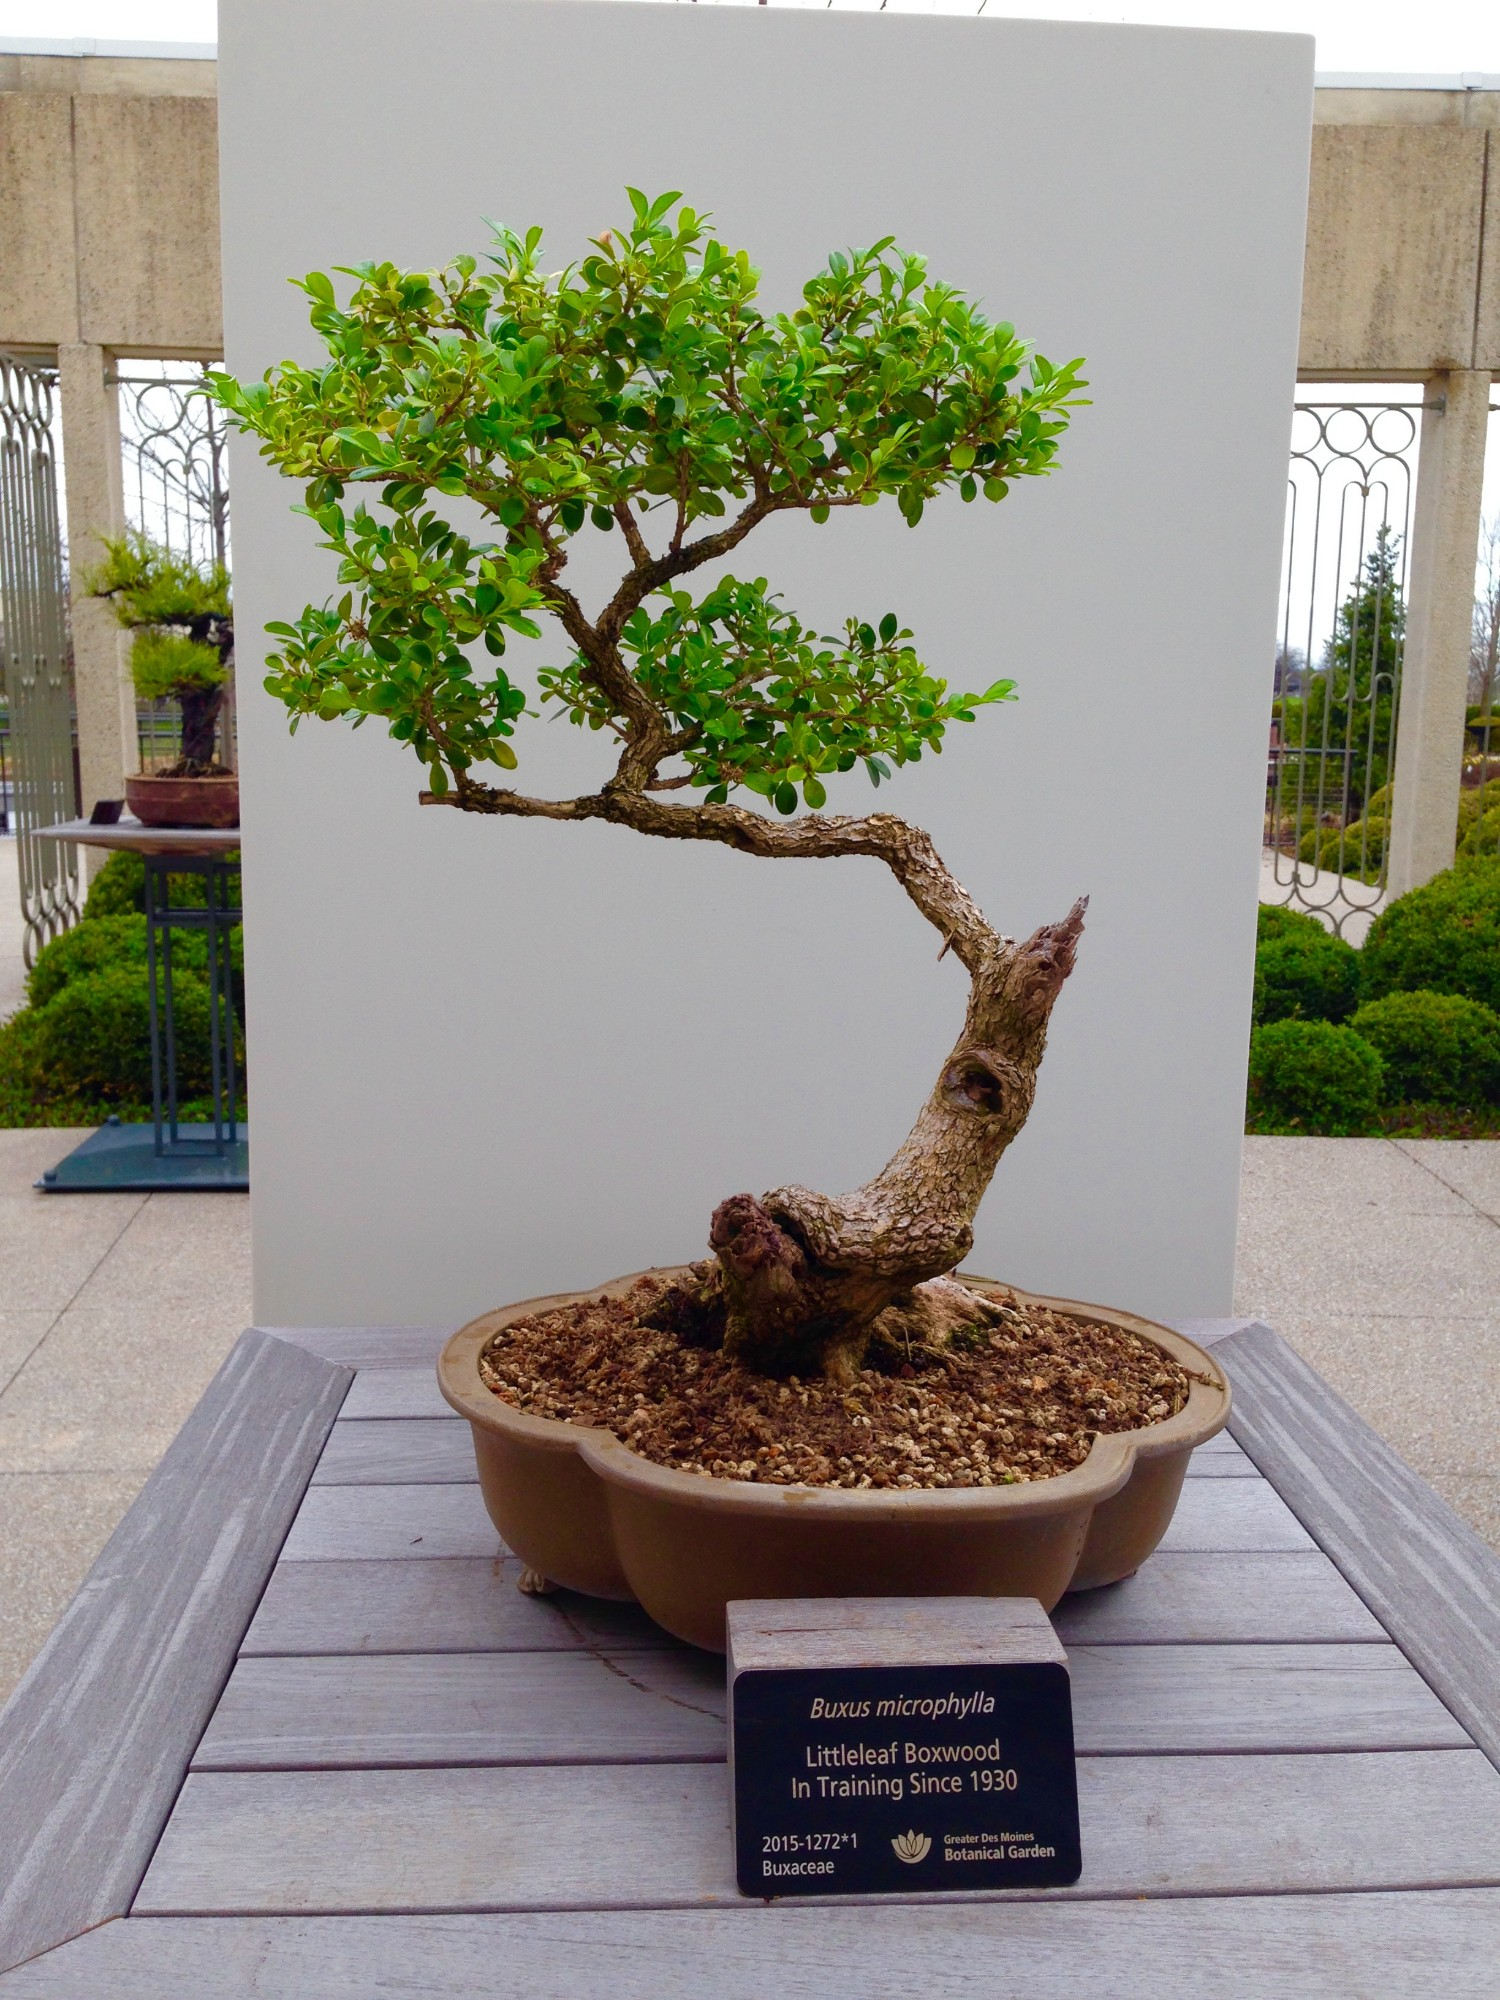 Buxus microphylla (littleleaf boxwood). Photo by Derek Carwood.